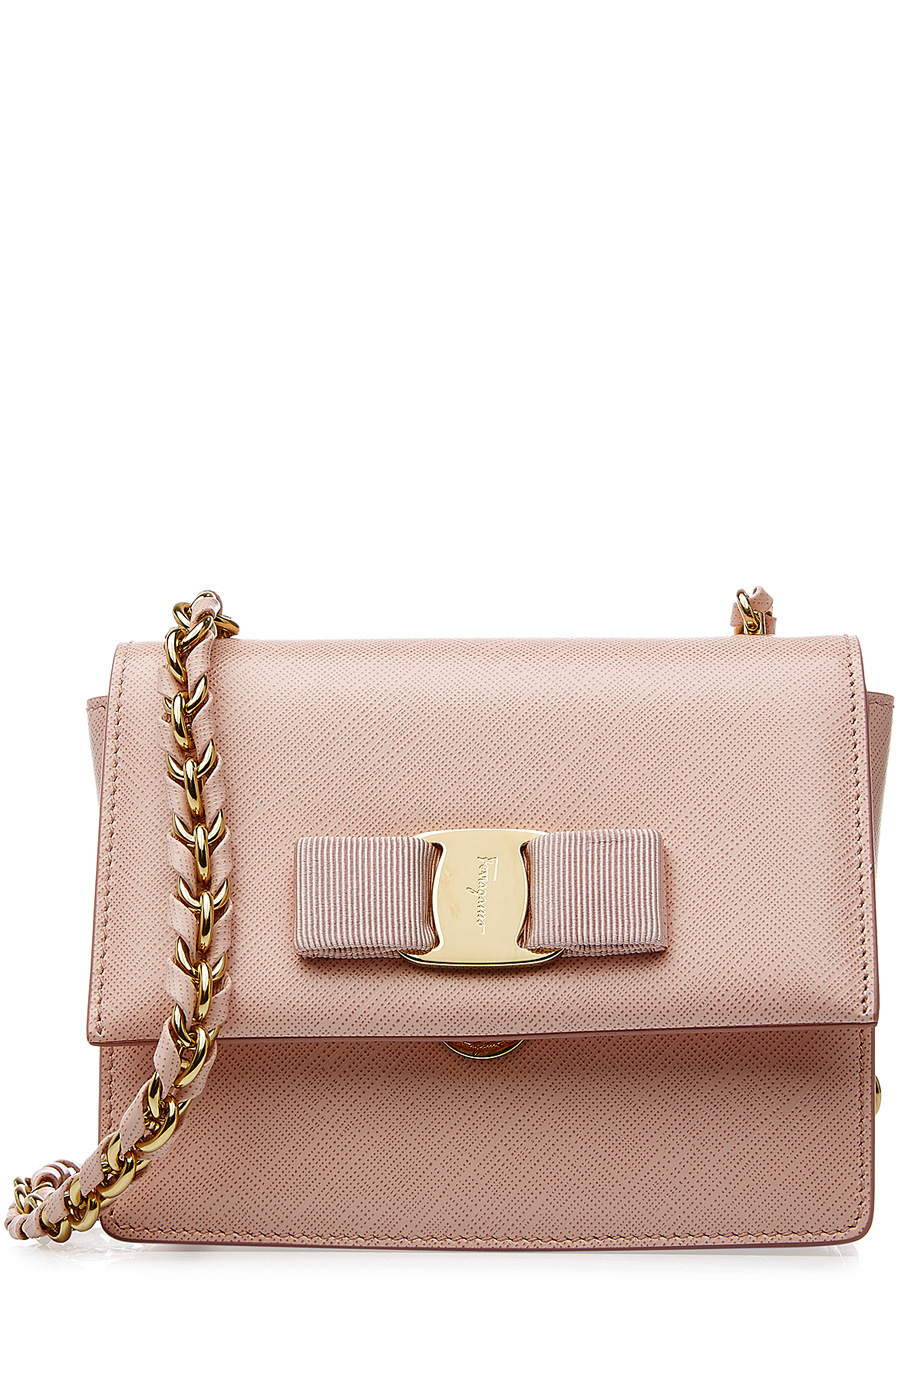 c0f5c80dfe Salvatore Ferragamo - Ginny Pink Leather Shoulder Bag